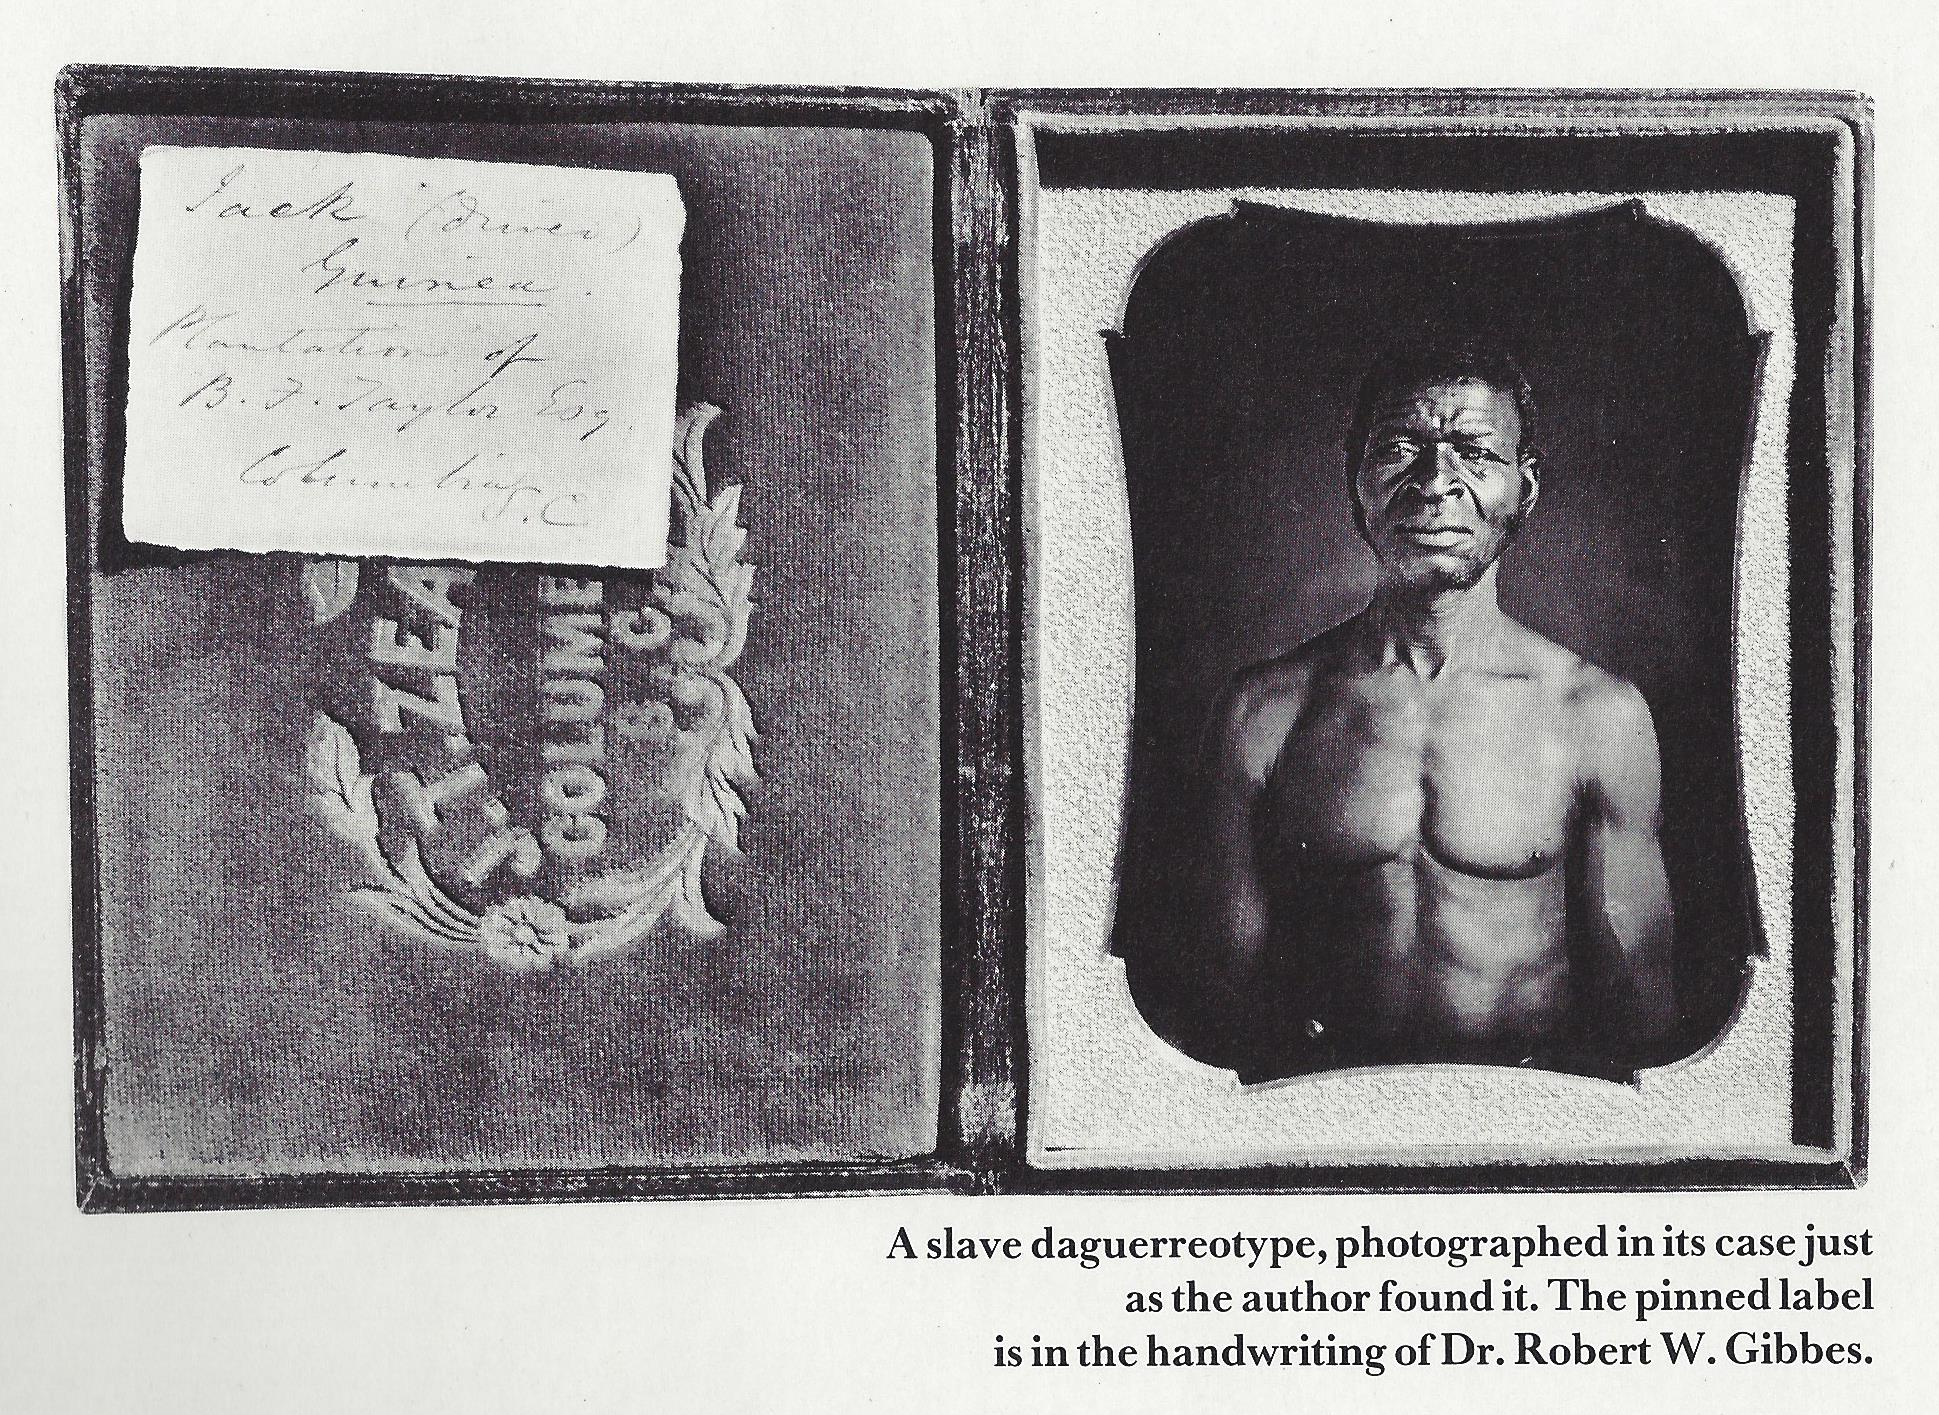 The photos of slaves were discovered by Elinor Reichlin, a researcher at Peabody Museum, and published in American Heritage in 1970.